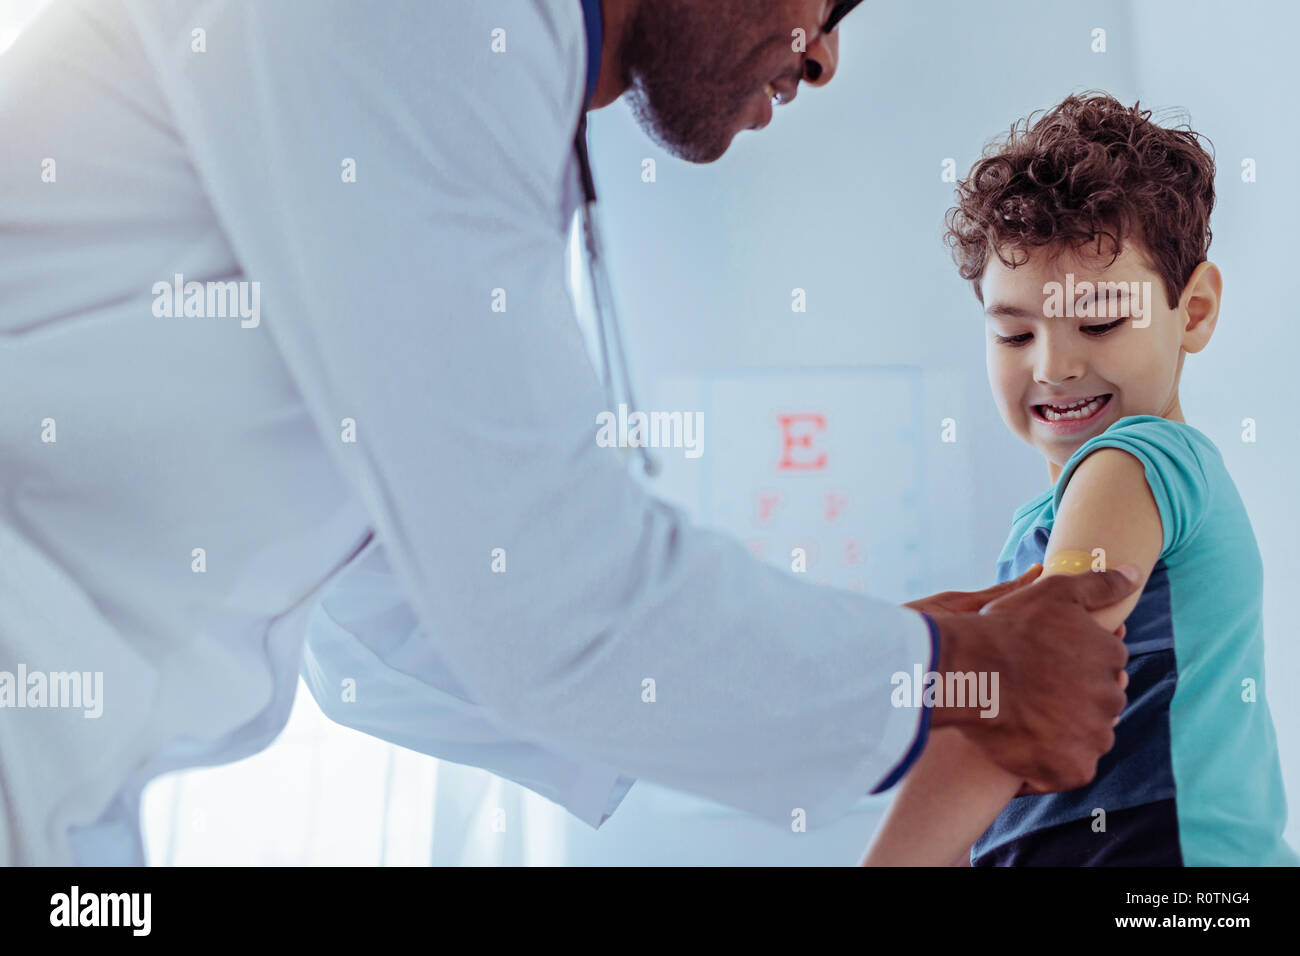 Image of: Images Cute Nice Boy Looking At His Arm Pixabay Cute Nice Boy Looking At His Arm Stock Photo 224278548 Alamy